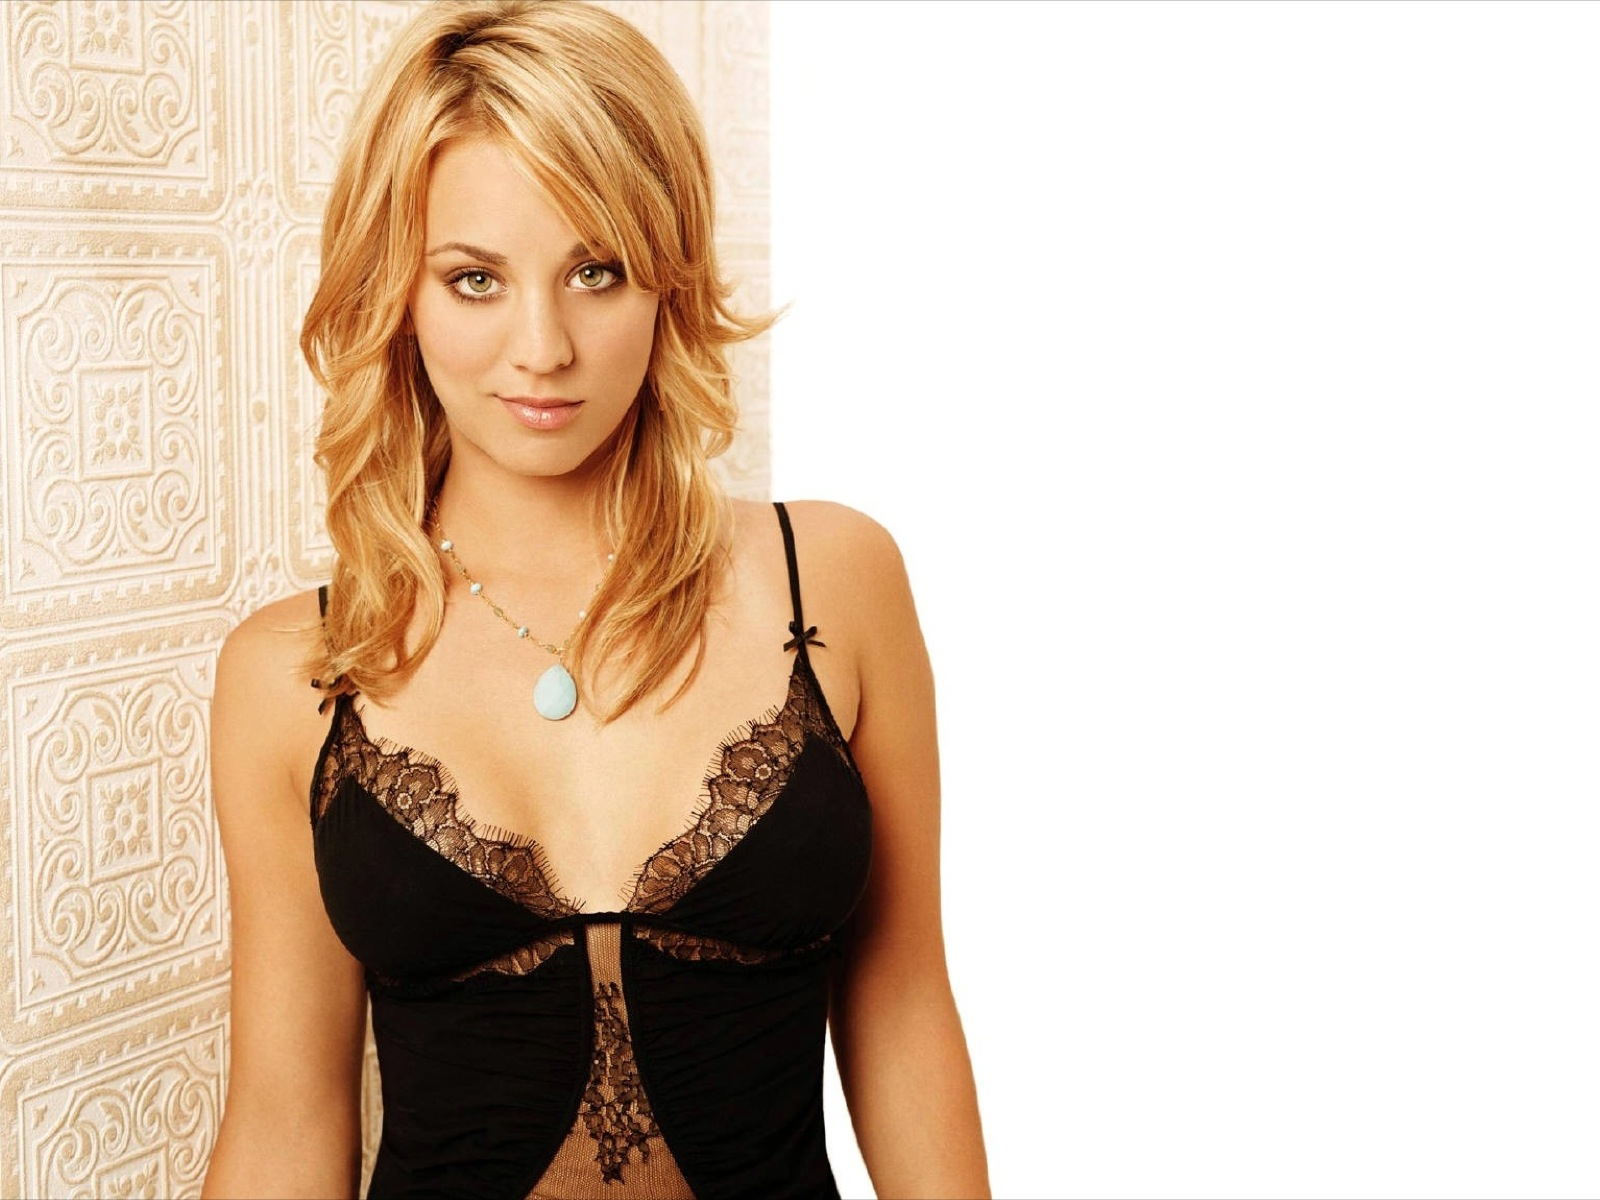 Kaley Cuoco hot picture